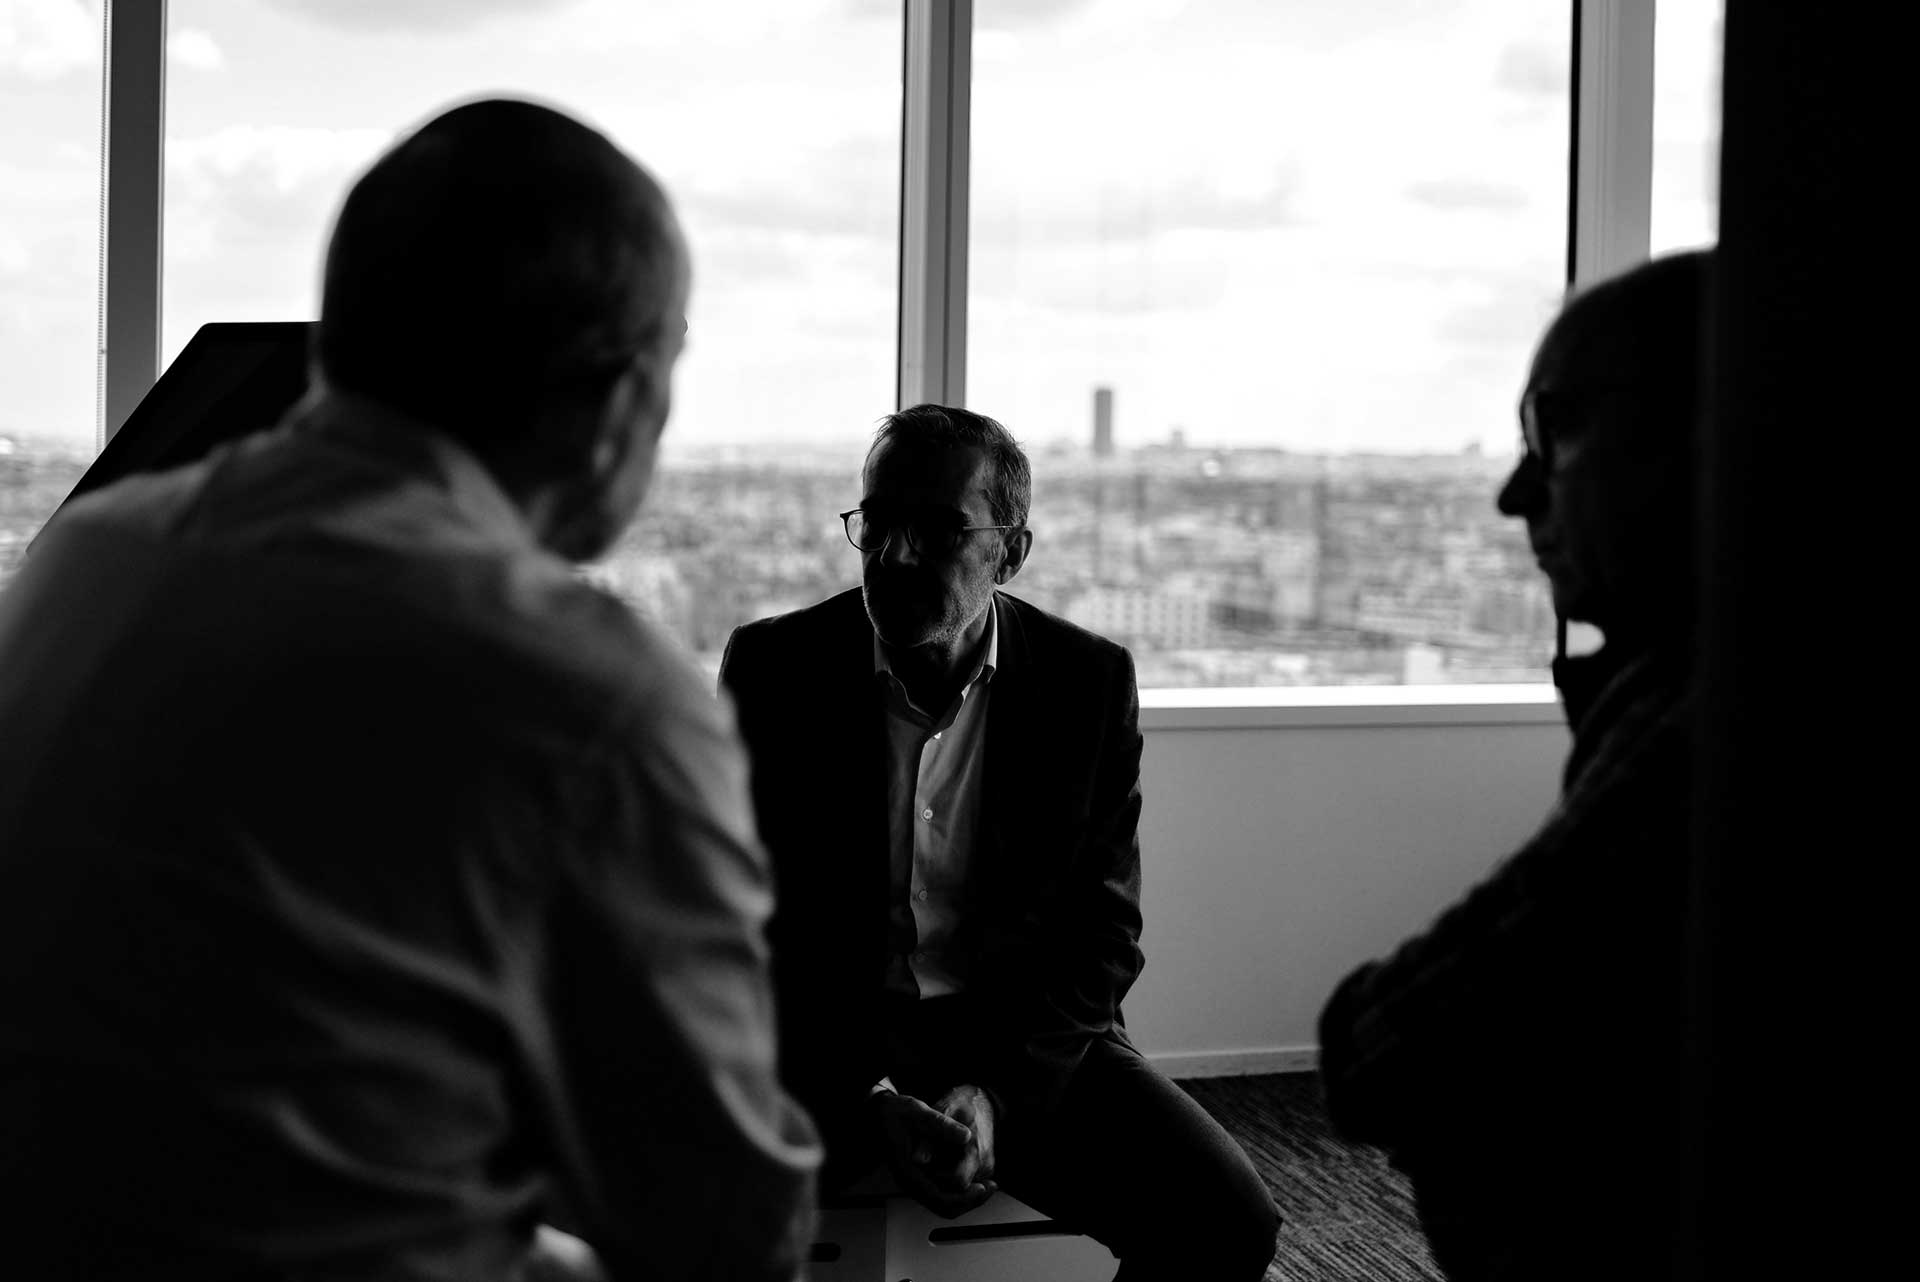 Three business men sitting together in an office with a few of a city skyline